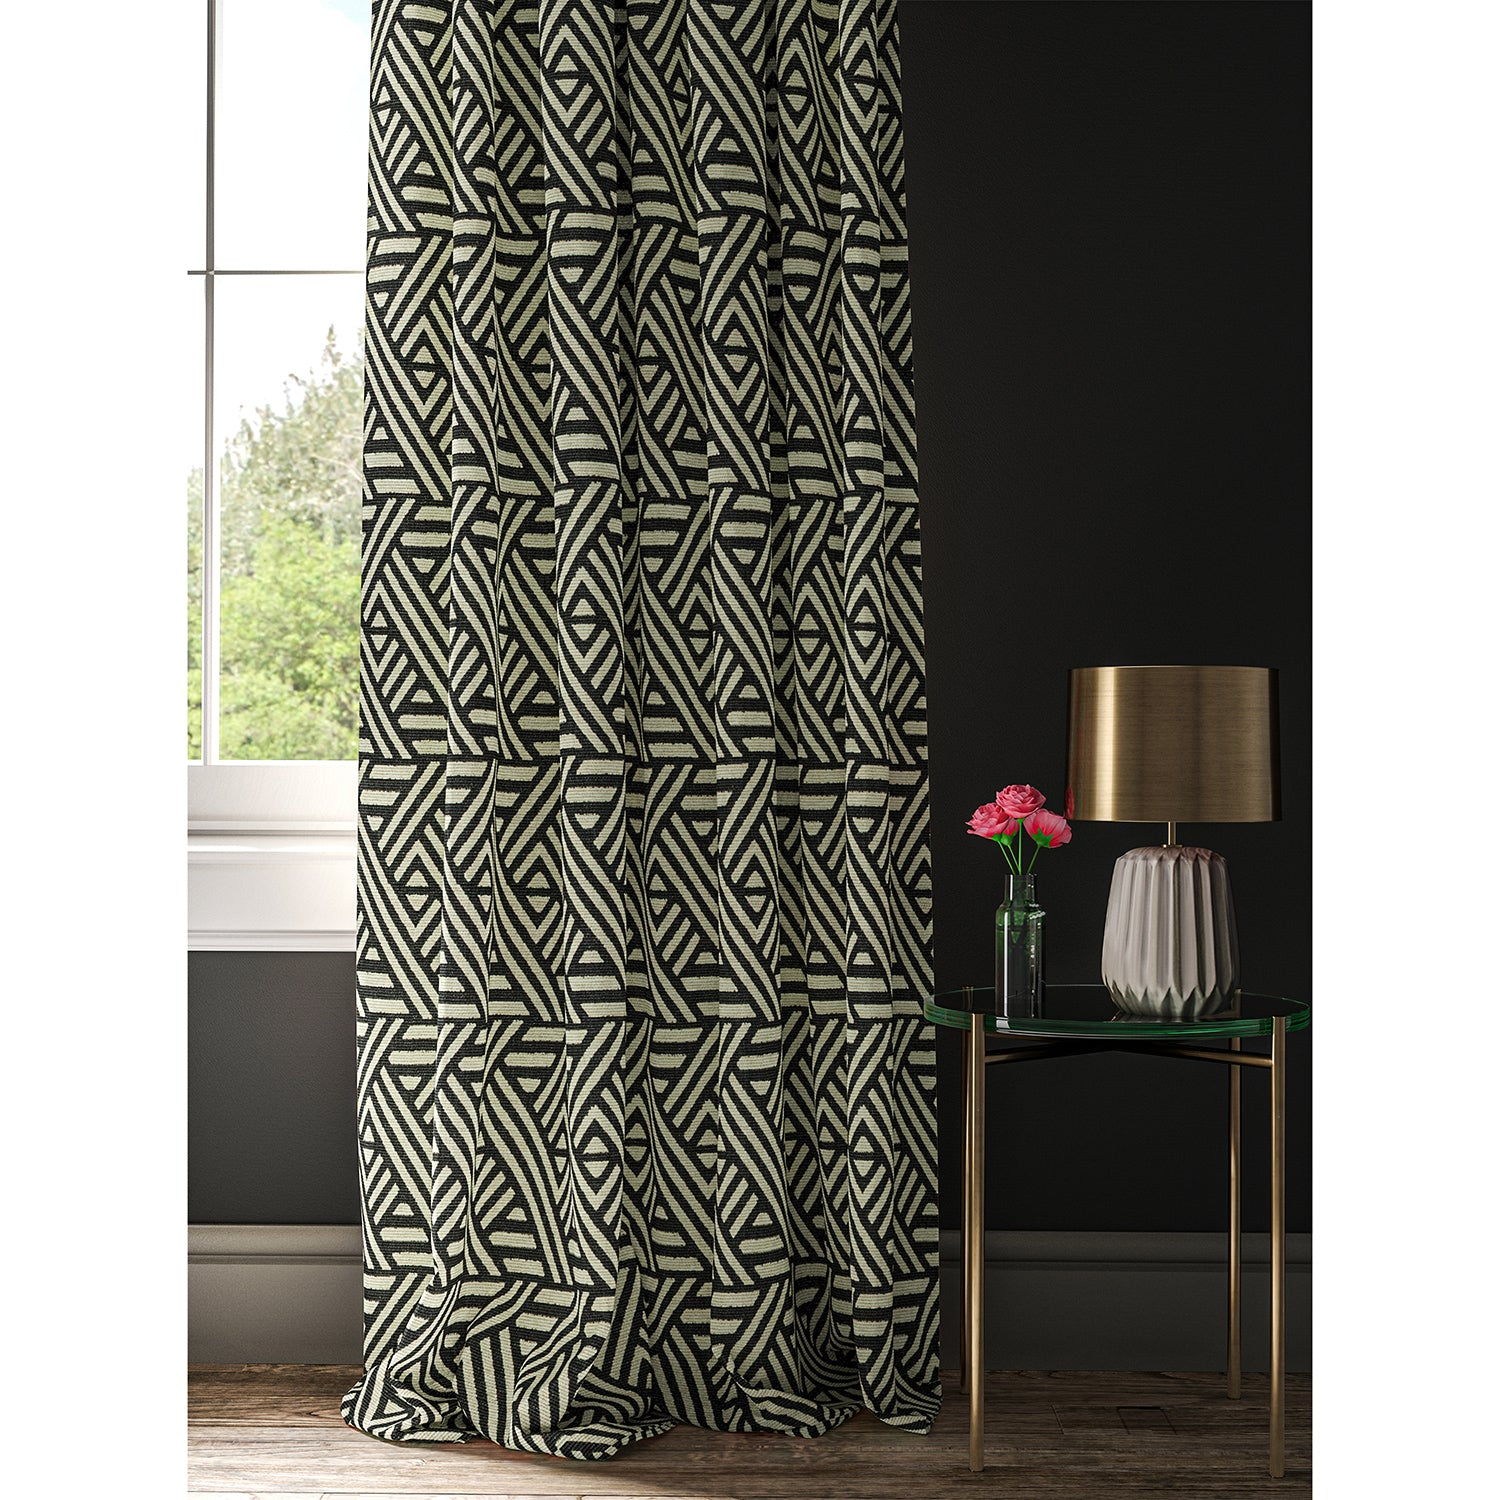 Curtain with a monochrome geometric print fabric